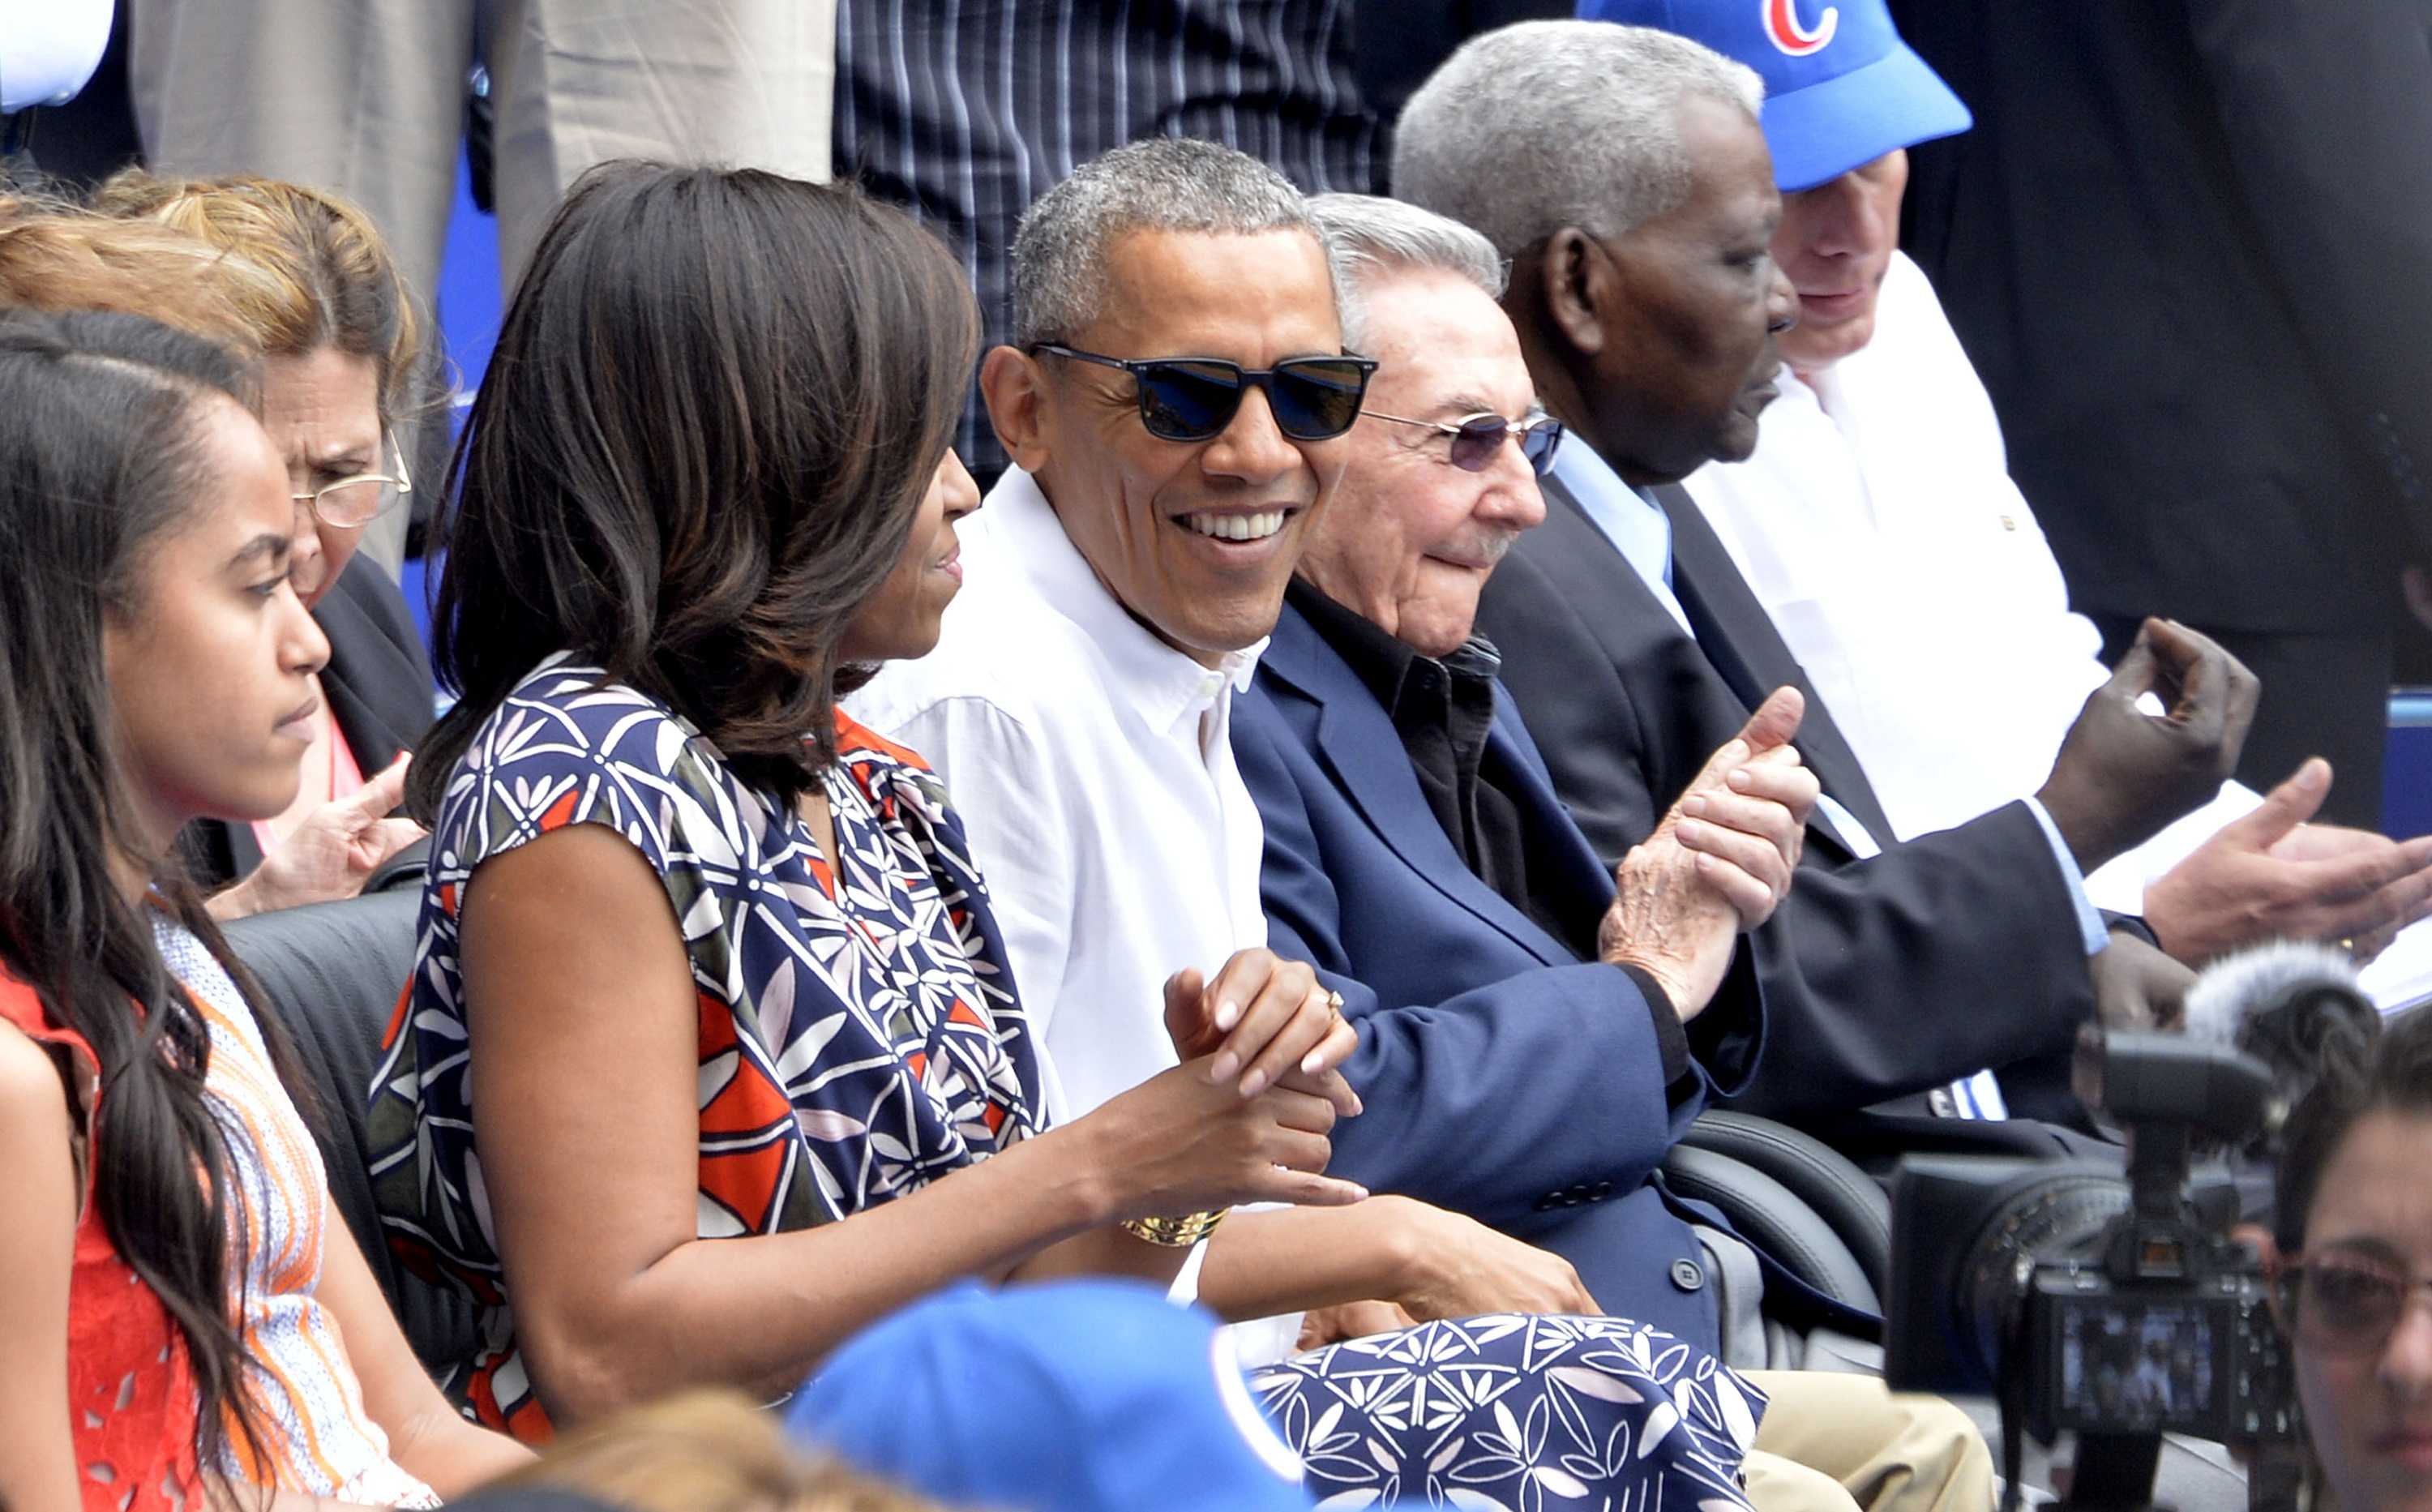 Should the U.S. restore relations with Cuba?